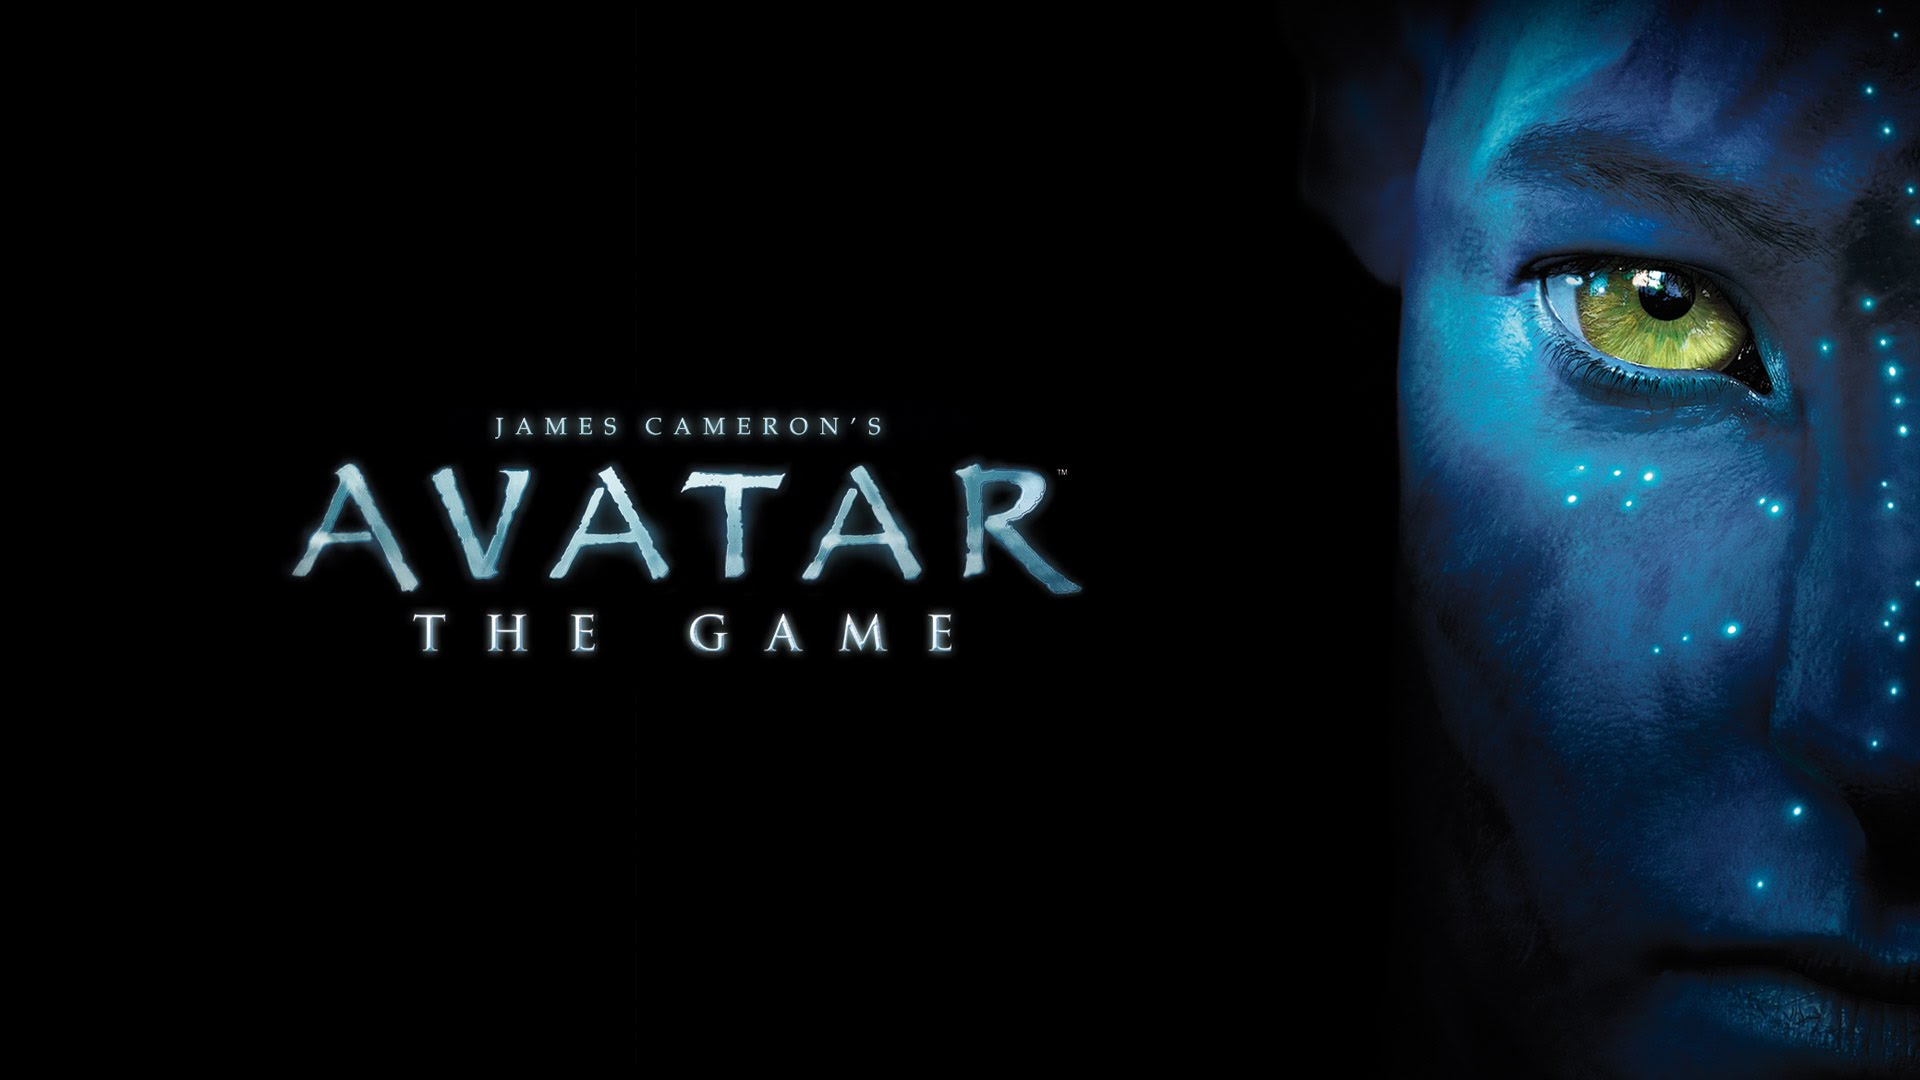 avatar-ubisoft-james-cameron-the-game-snowdrop-nat-games